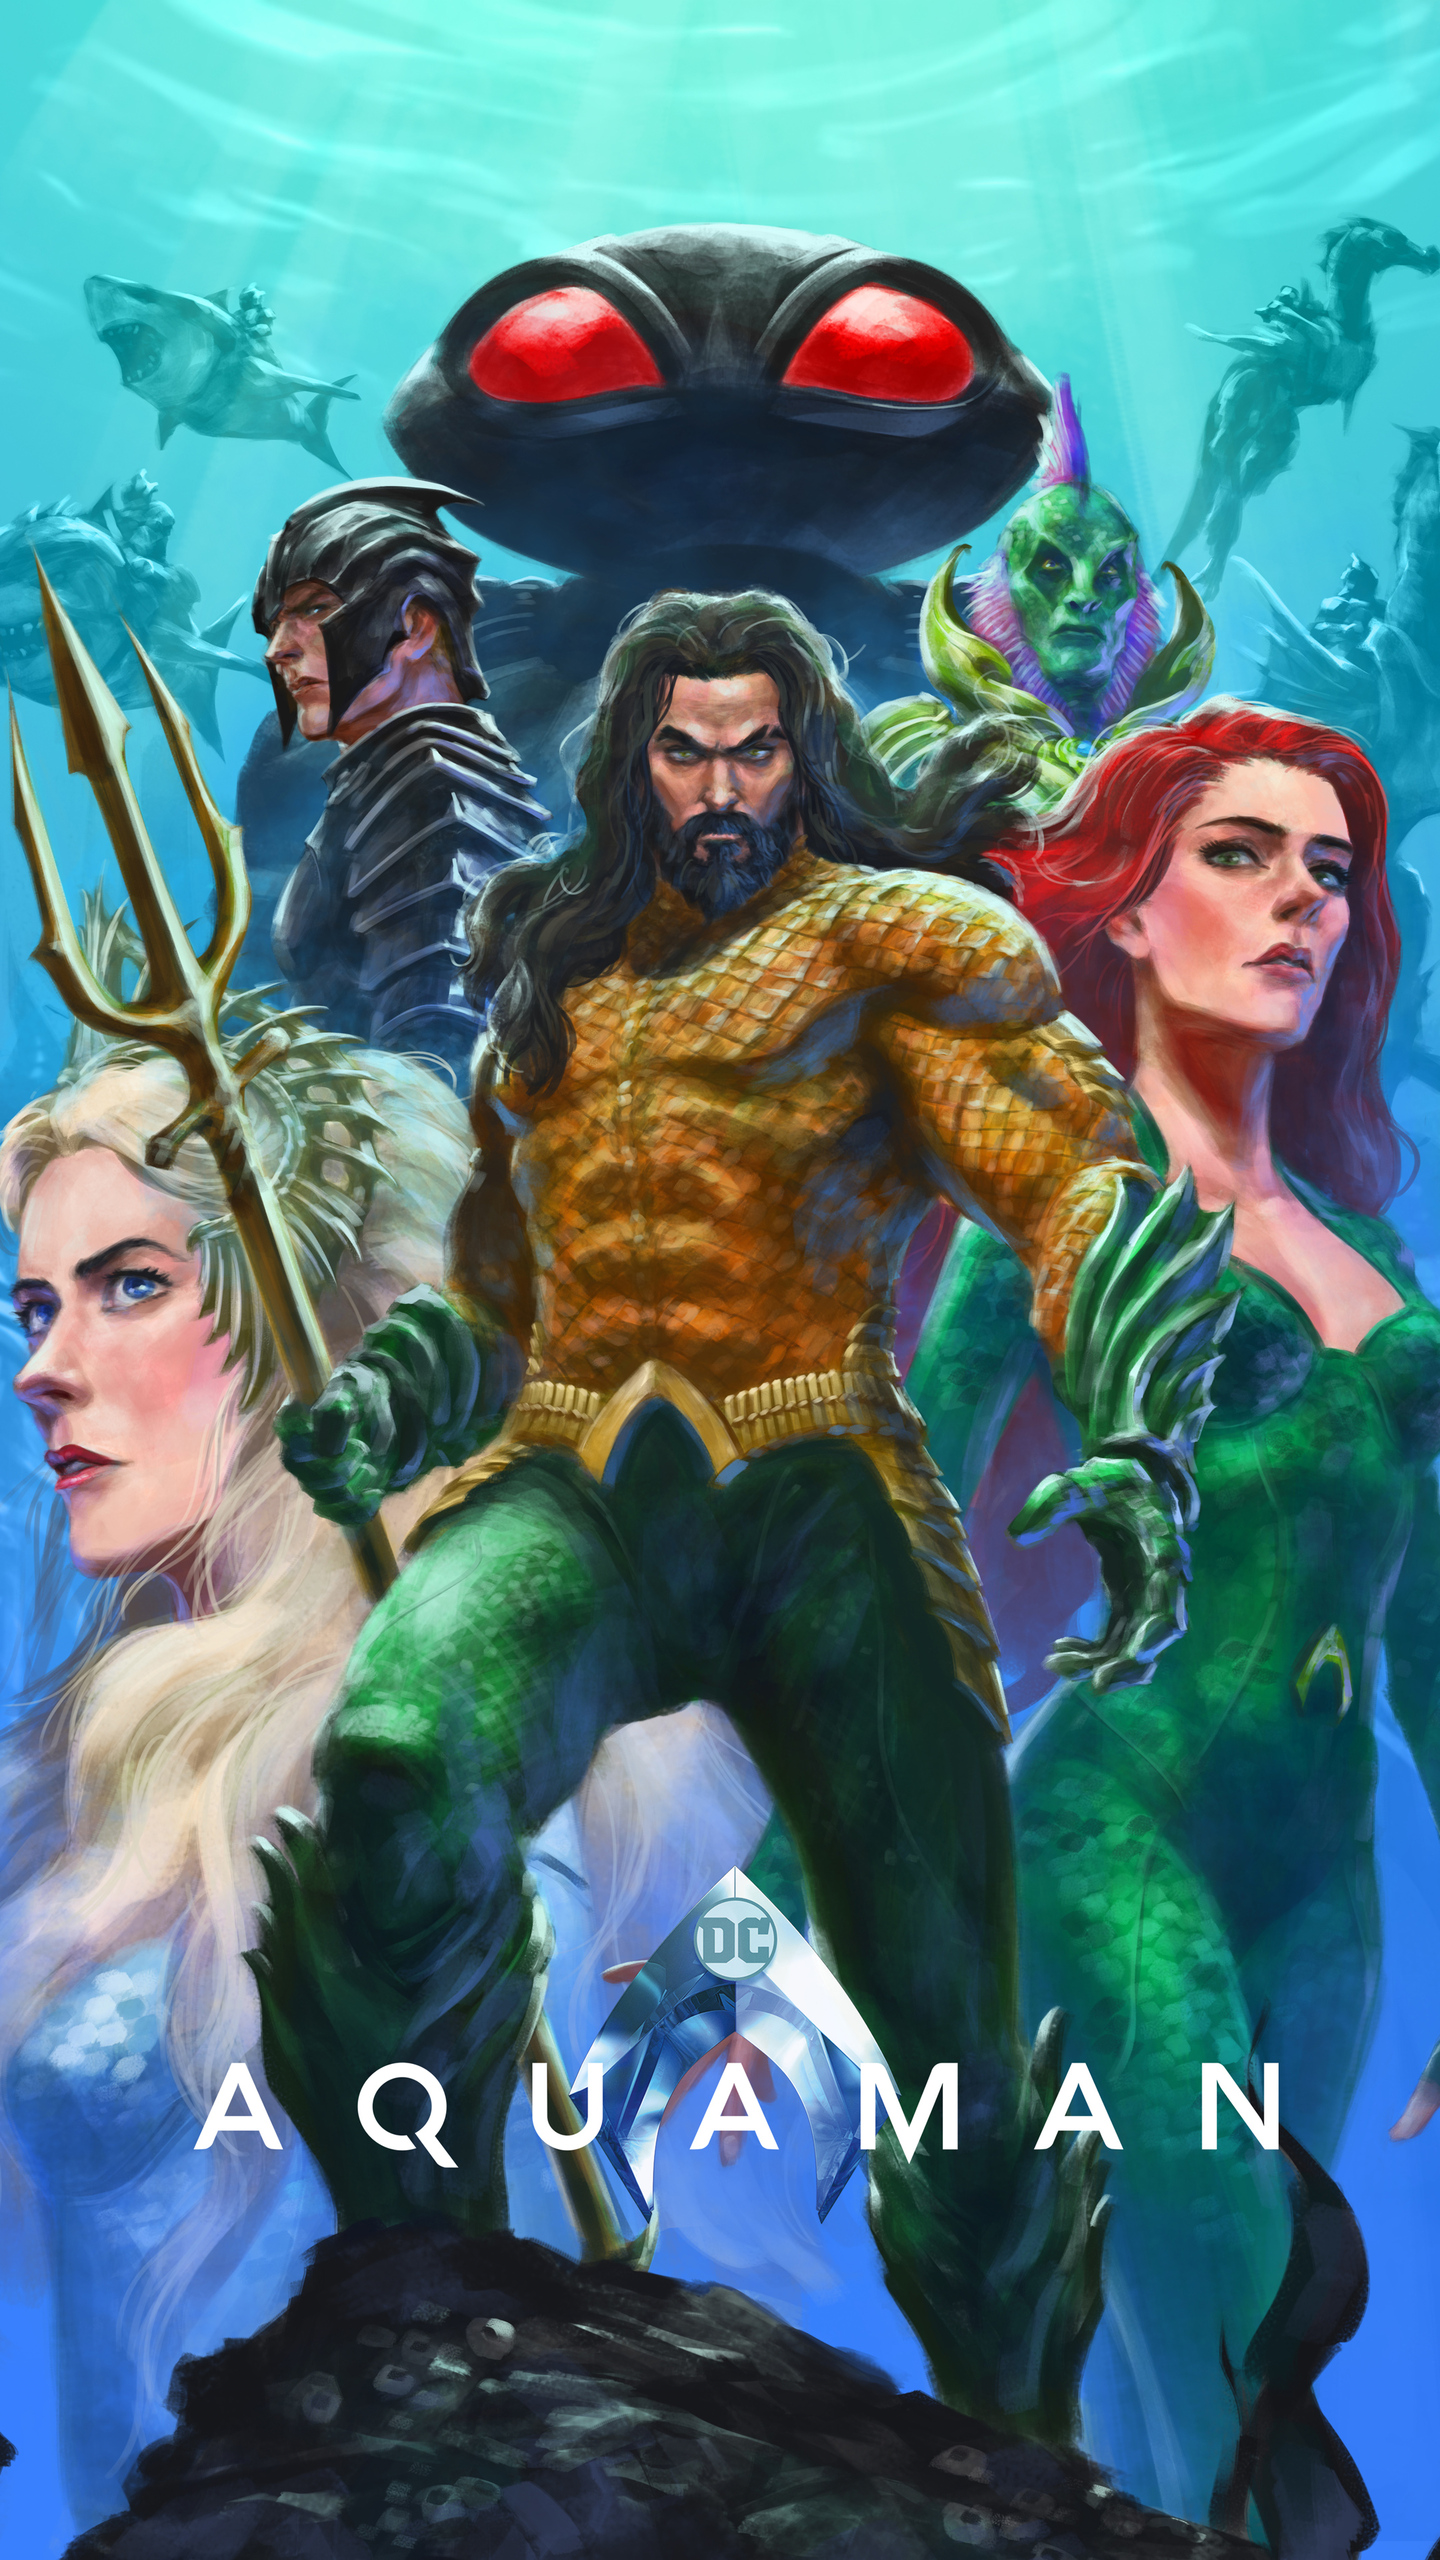 aquaman-mera-artwork-4k-hd.jpg